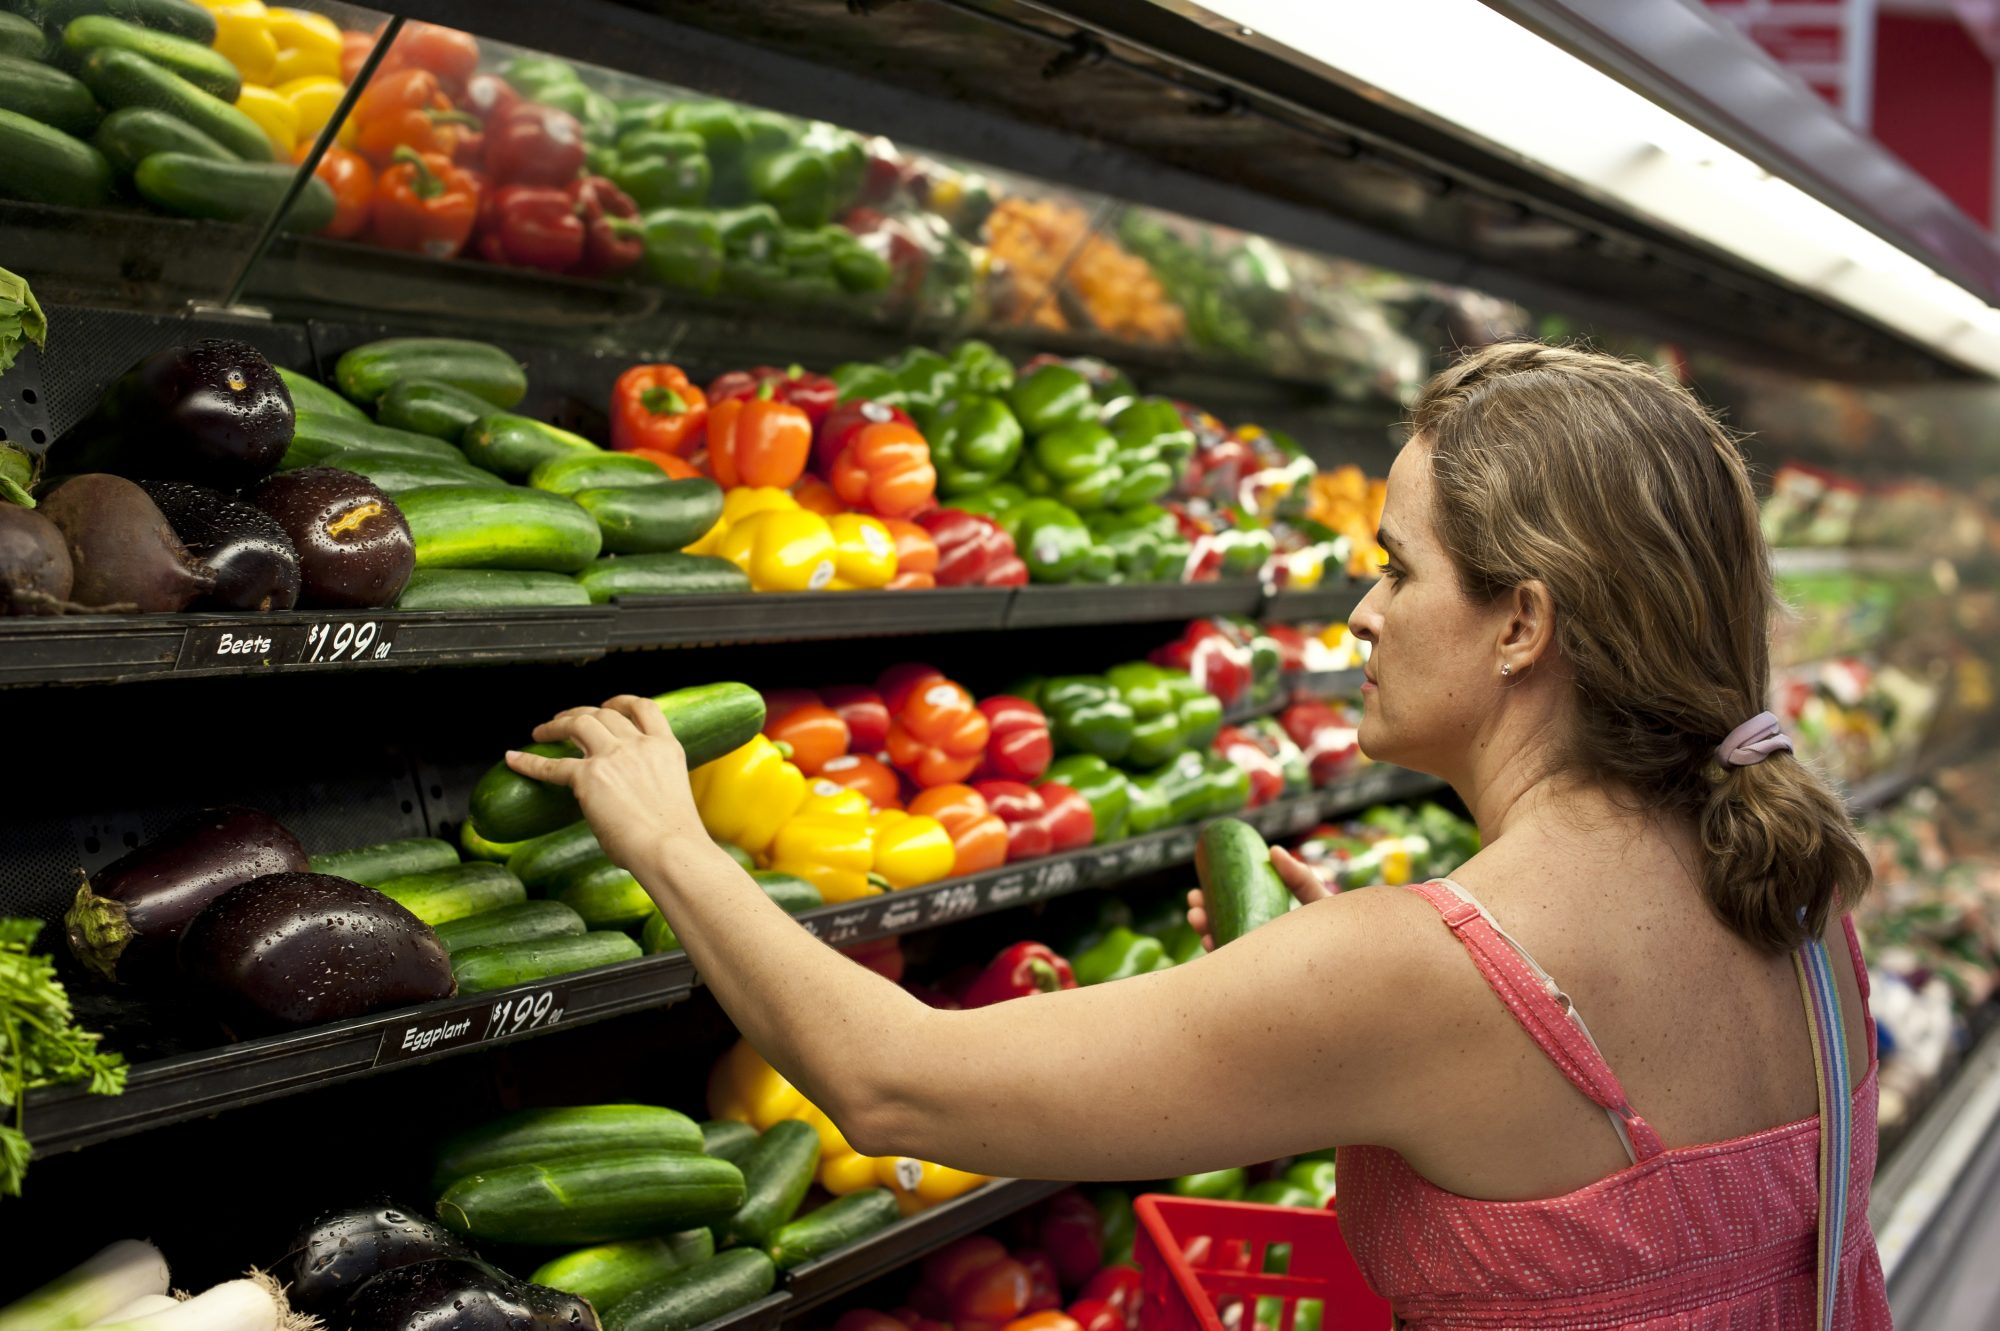 WATCH: The Reason Grocery Stores Spray Water on Their Produce Will Blow Your Mind